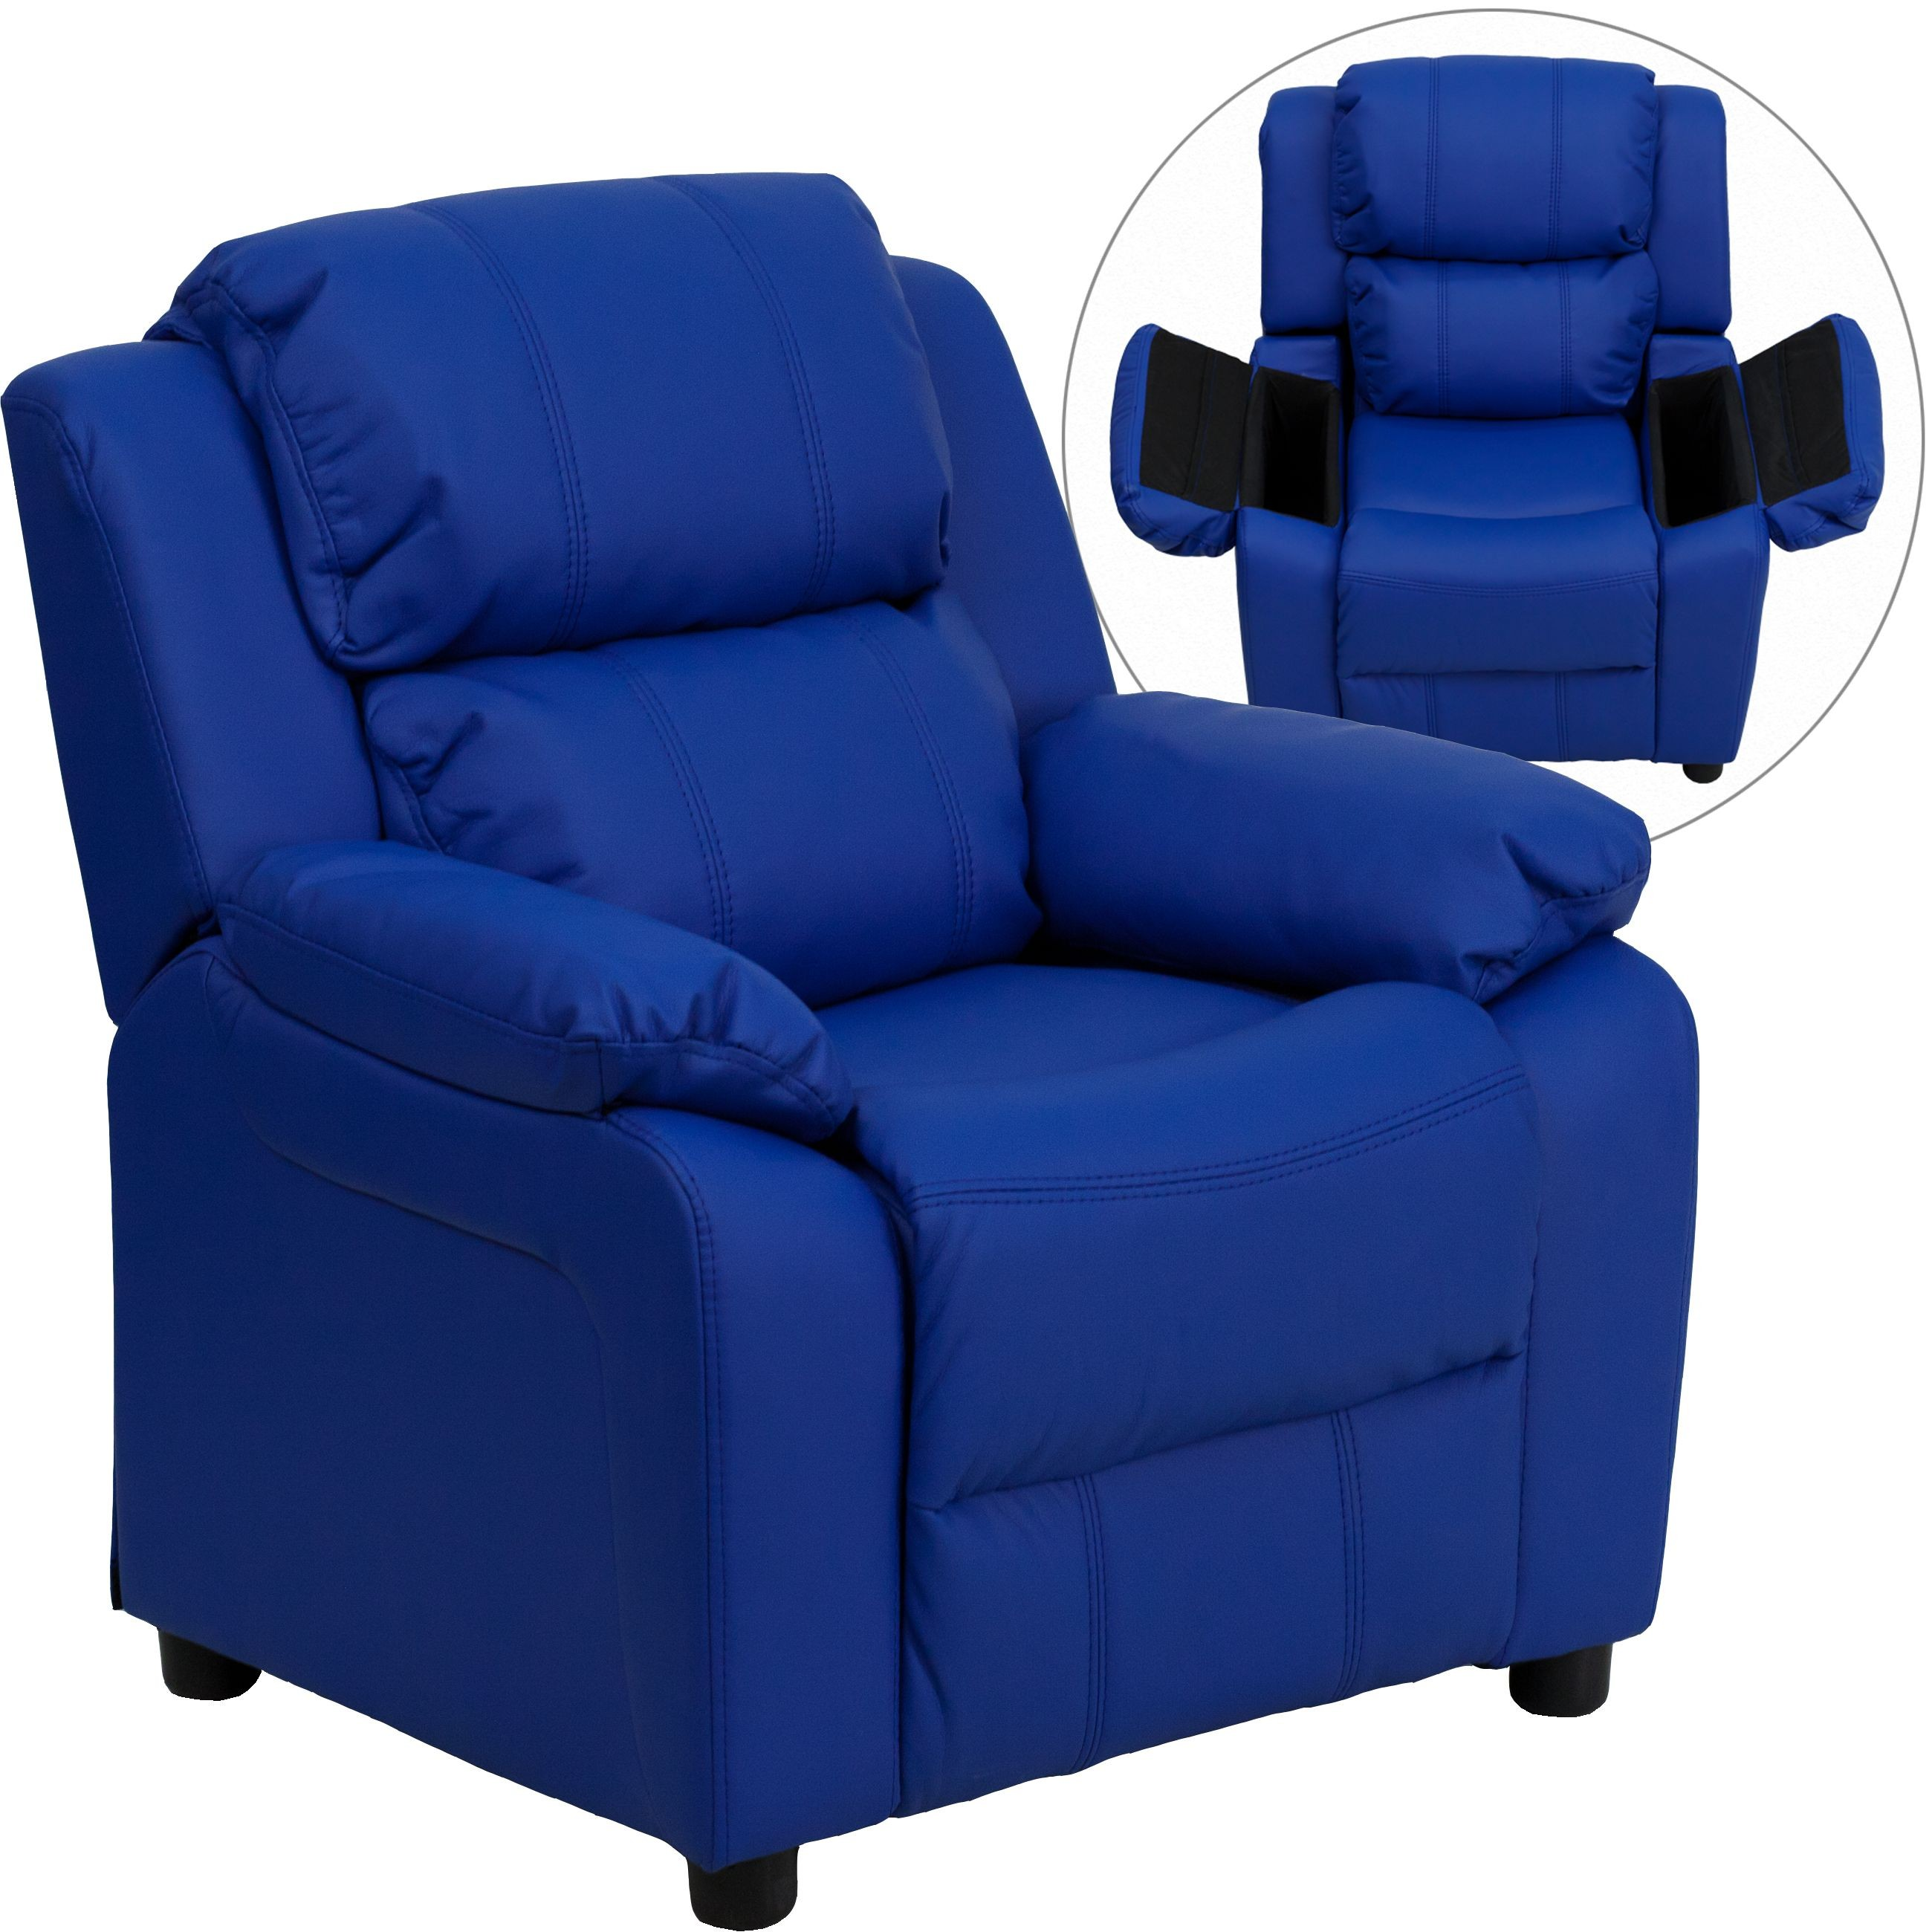 Flash Furniture BT-7985-KID-BLUE-GG Deluxe Heavily Padded Contemporary Blue Vinyl Kids Recliner with Storage Arms